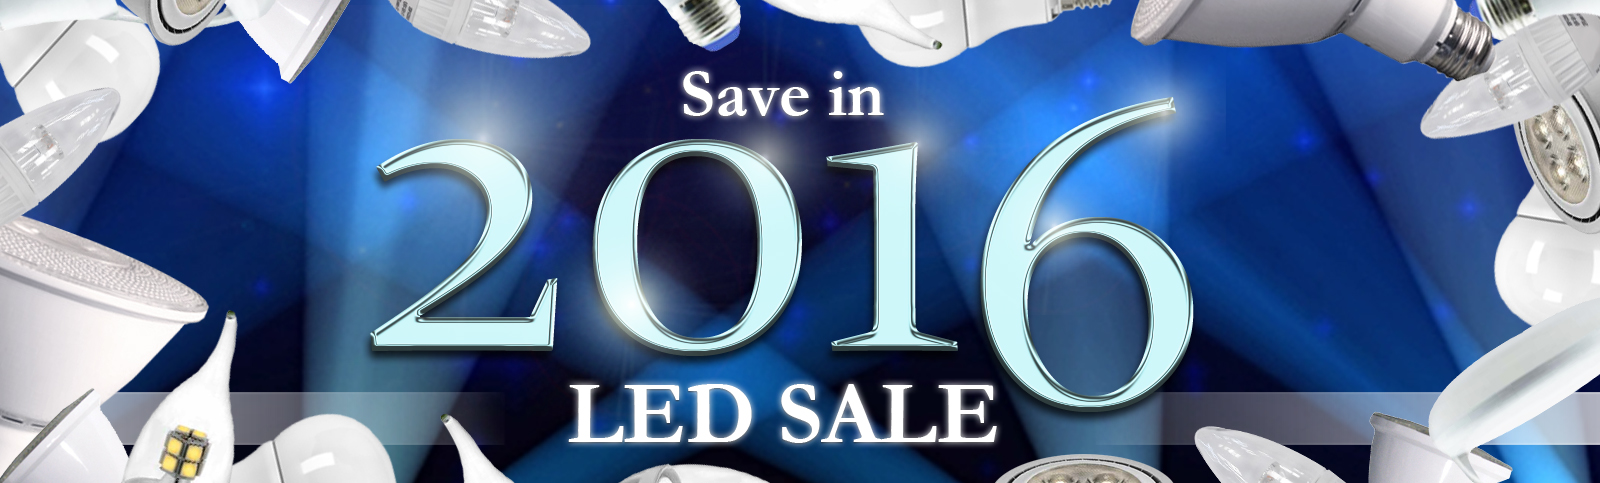 LED Light Bulb Sale